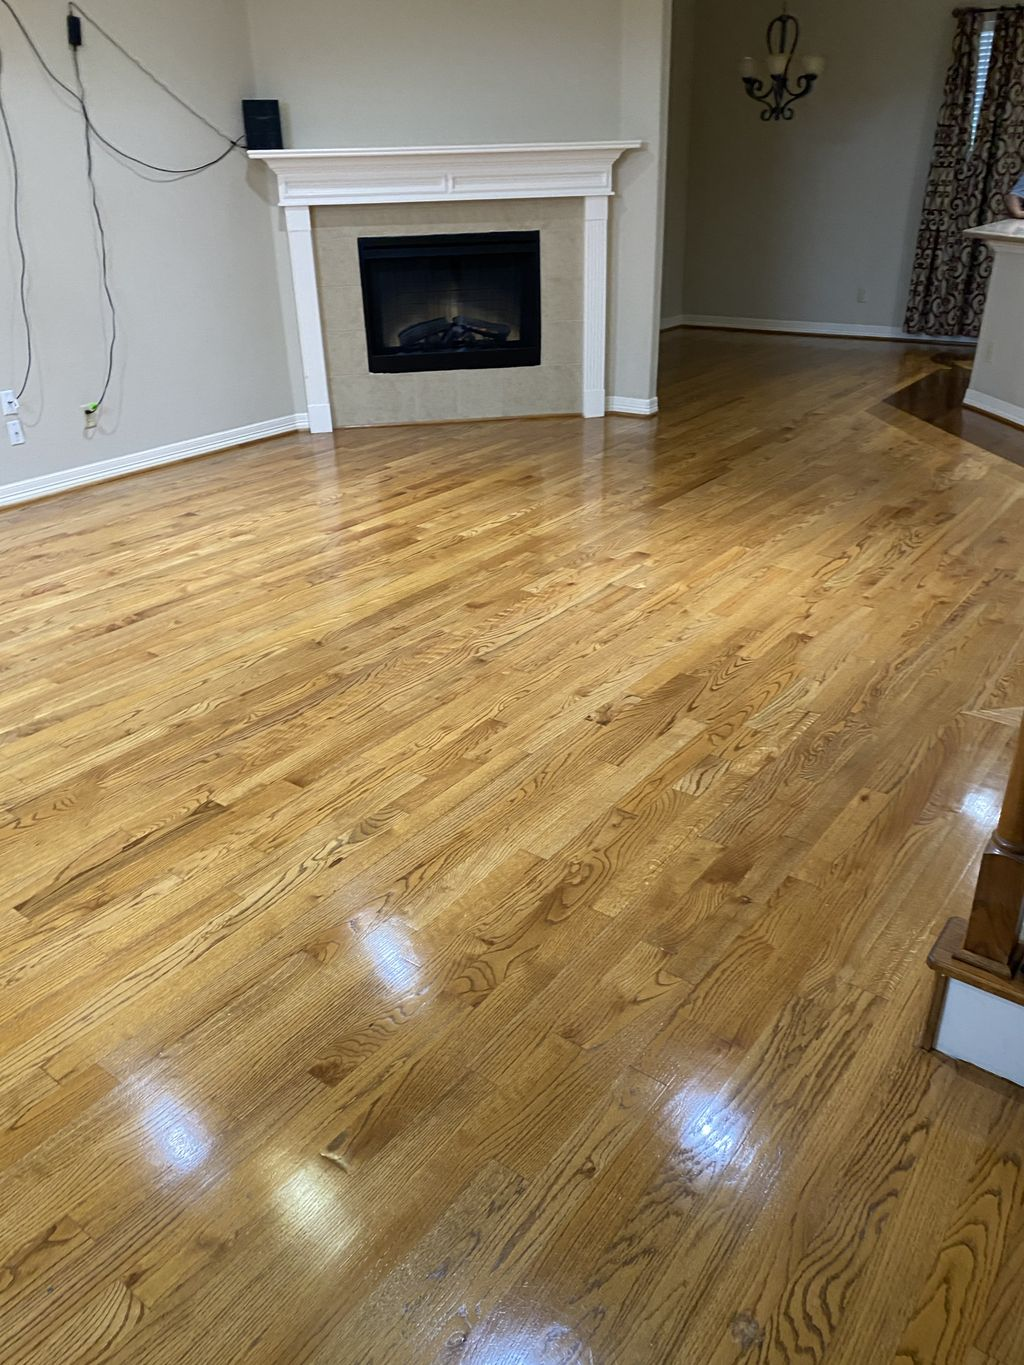 Hardwood Floor Refinish - Before and after photos